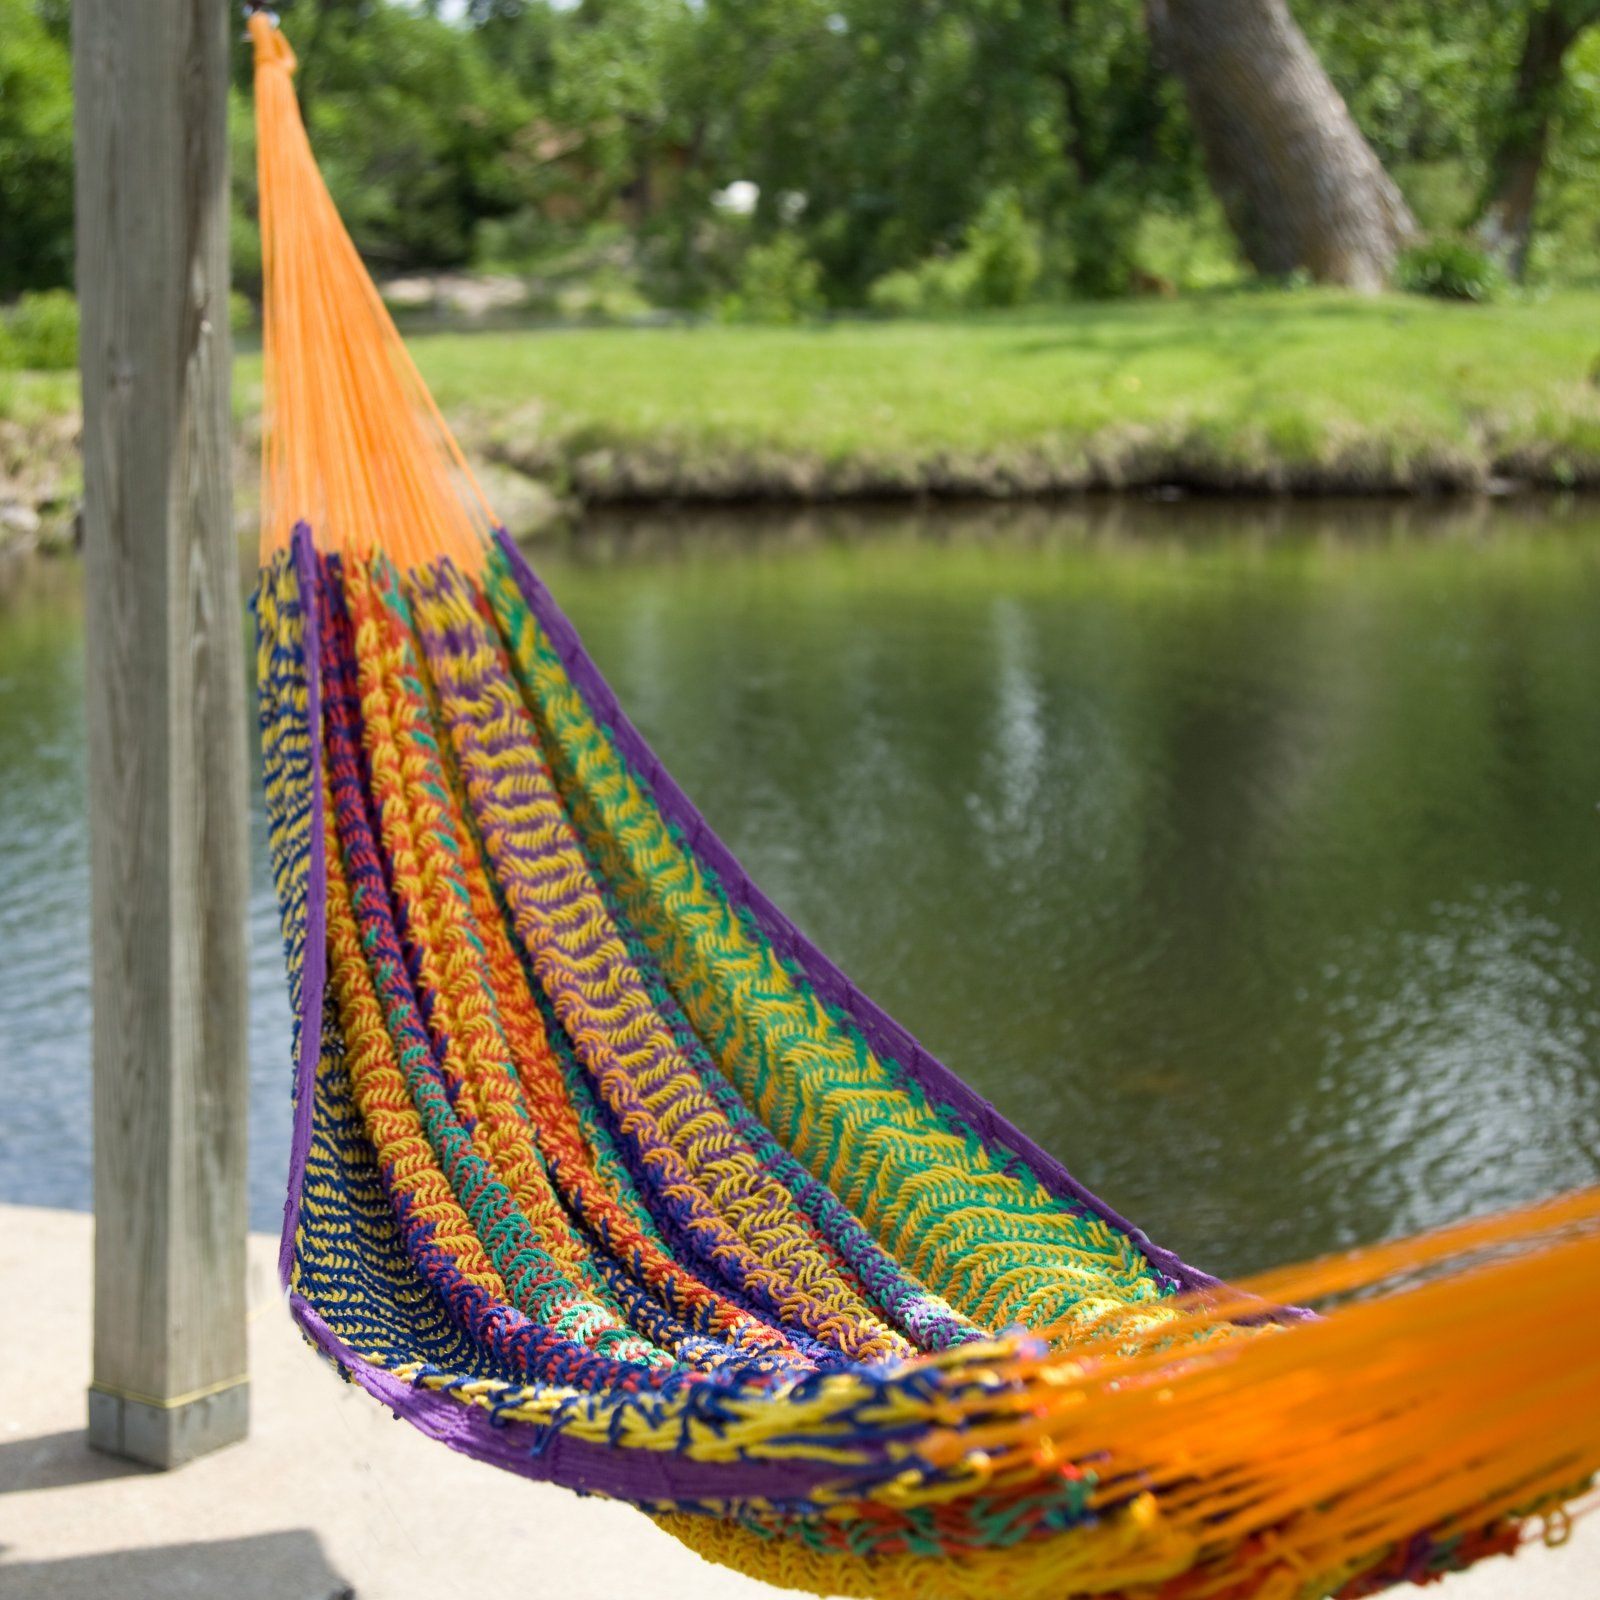 natural balsam green garden lowes ideas hammock stand with interesting buy hill grass outdoor inspiring unique lawsonreport plus and furniture design trees